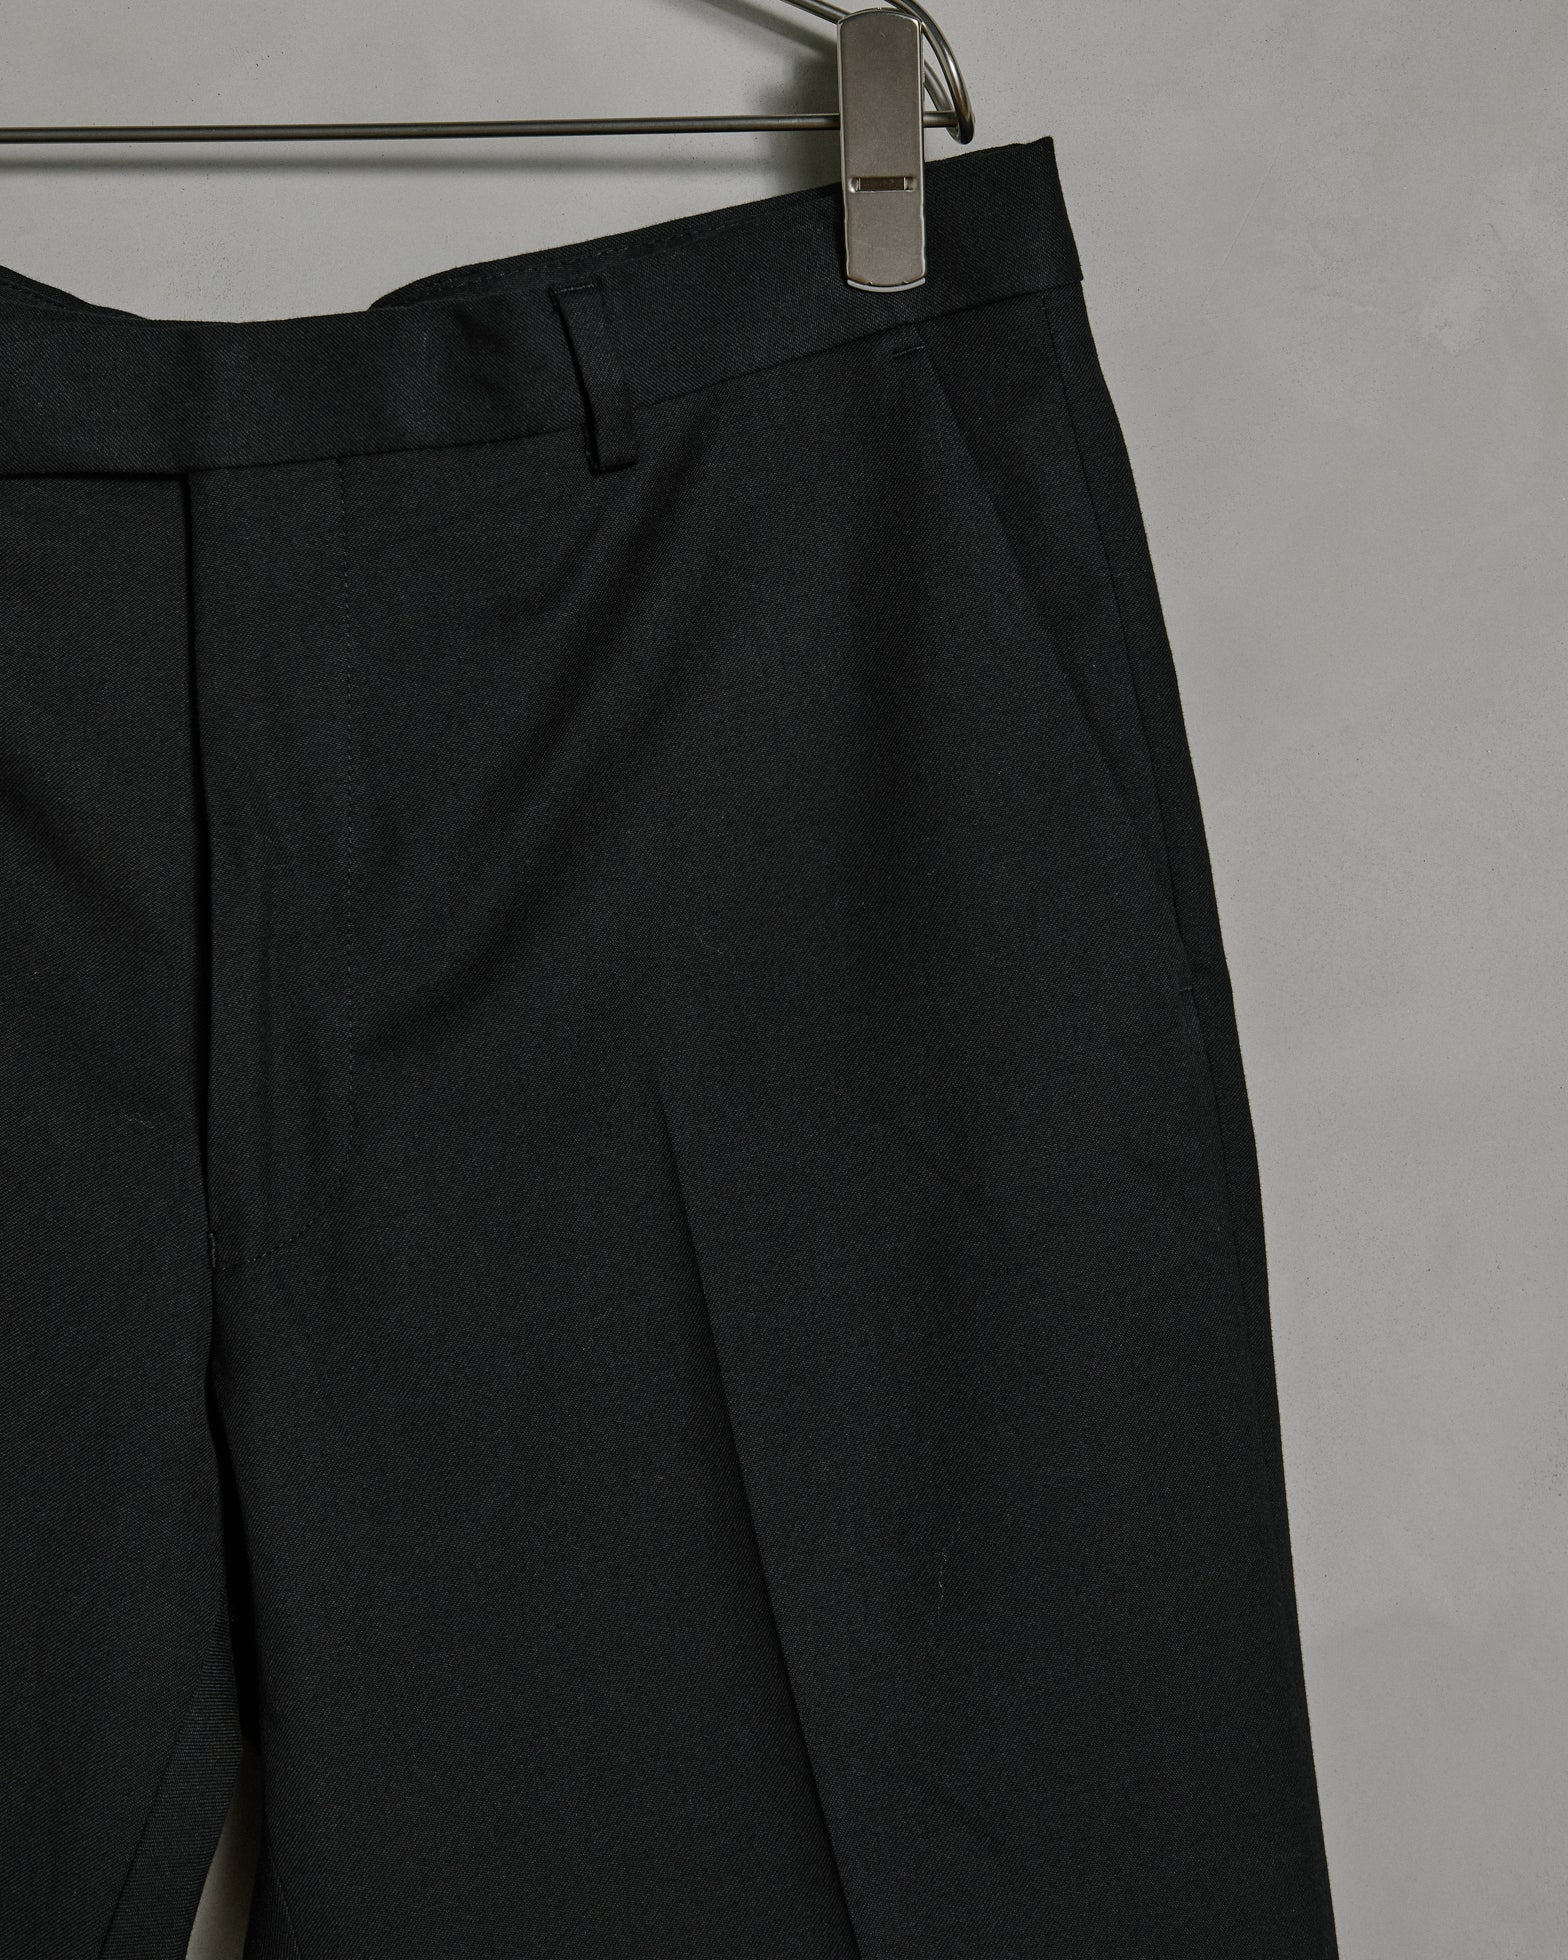 Philmore 1031 M.W. Pants in Black